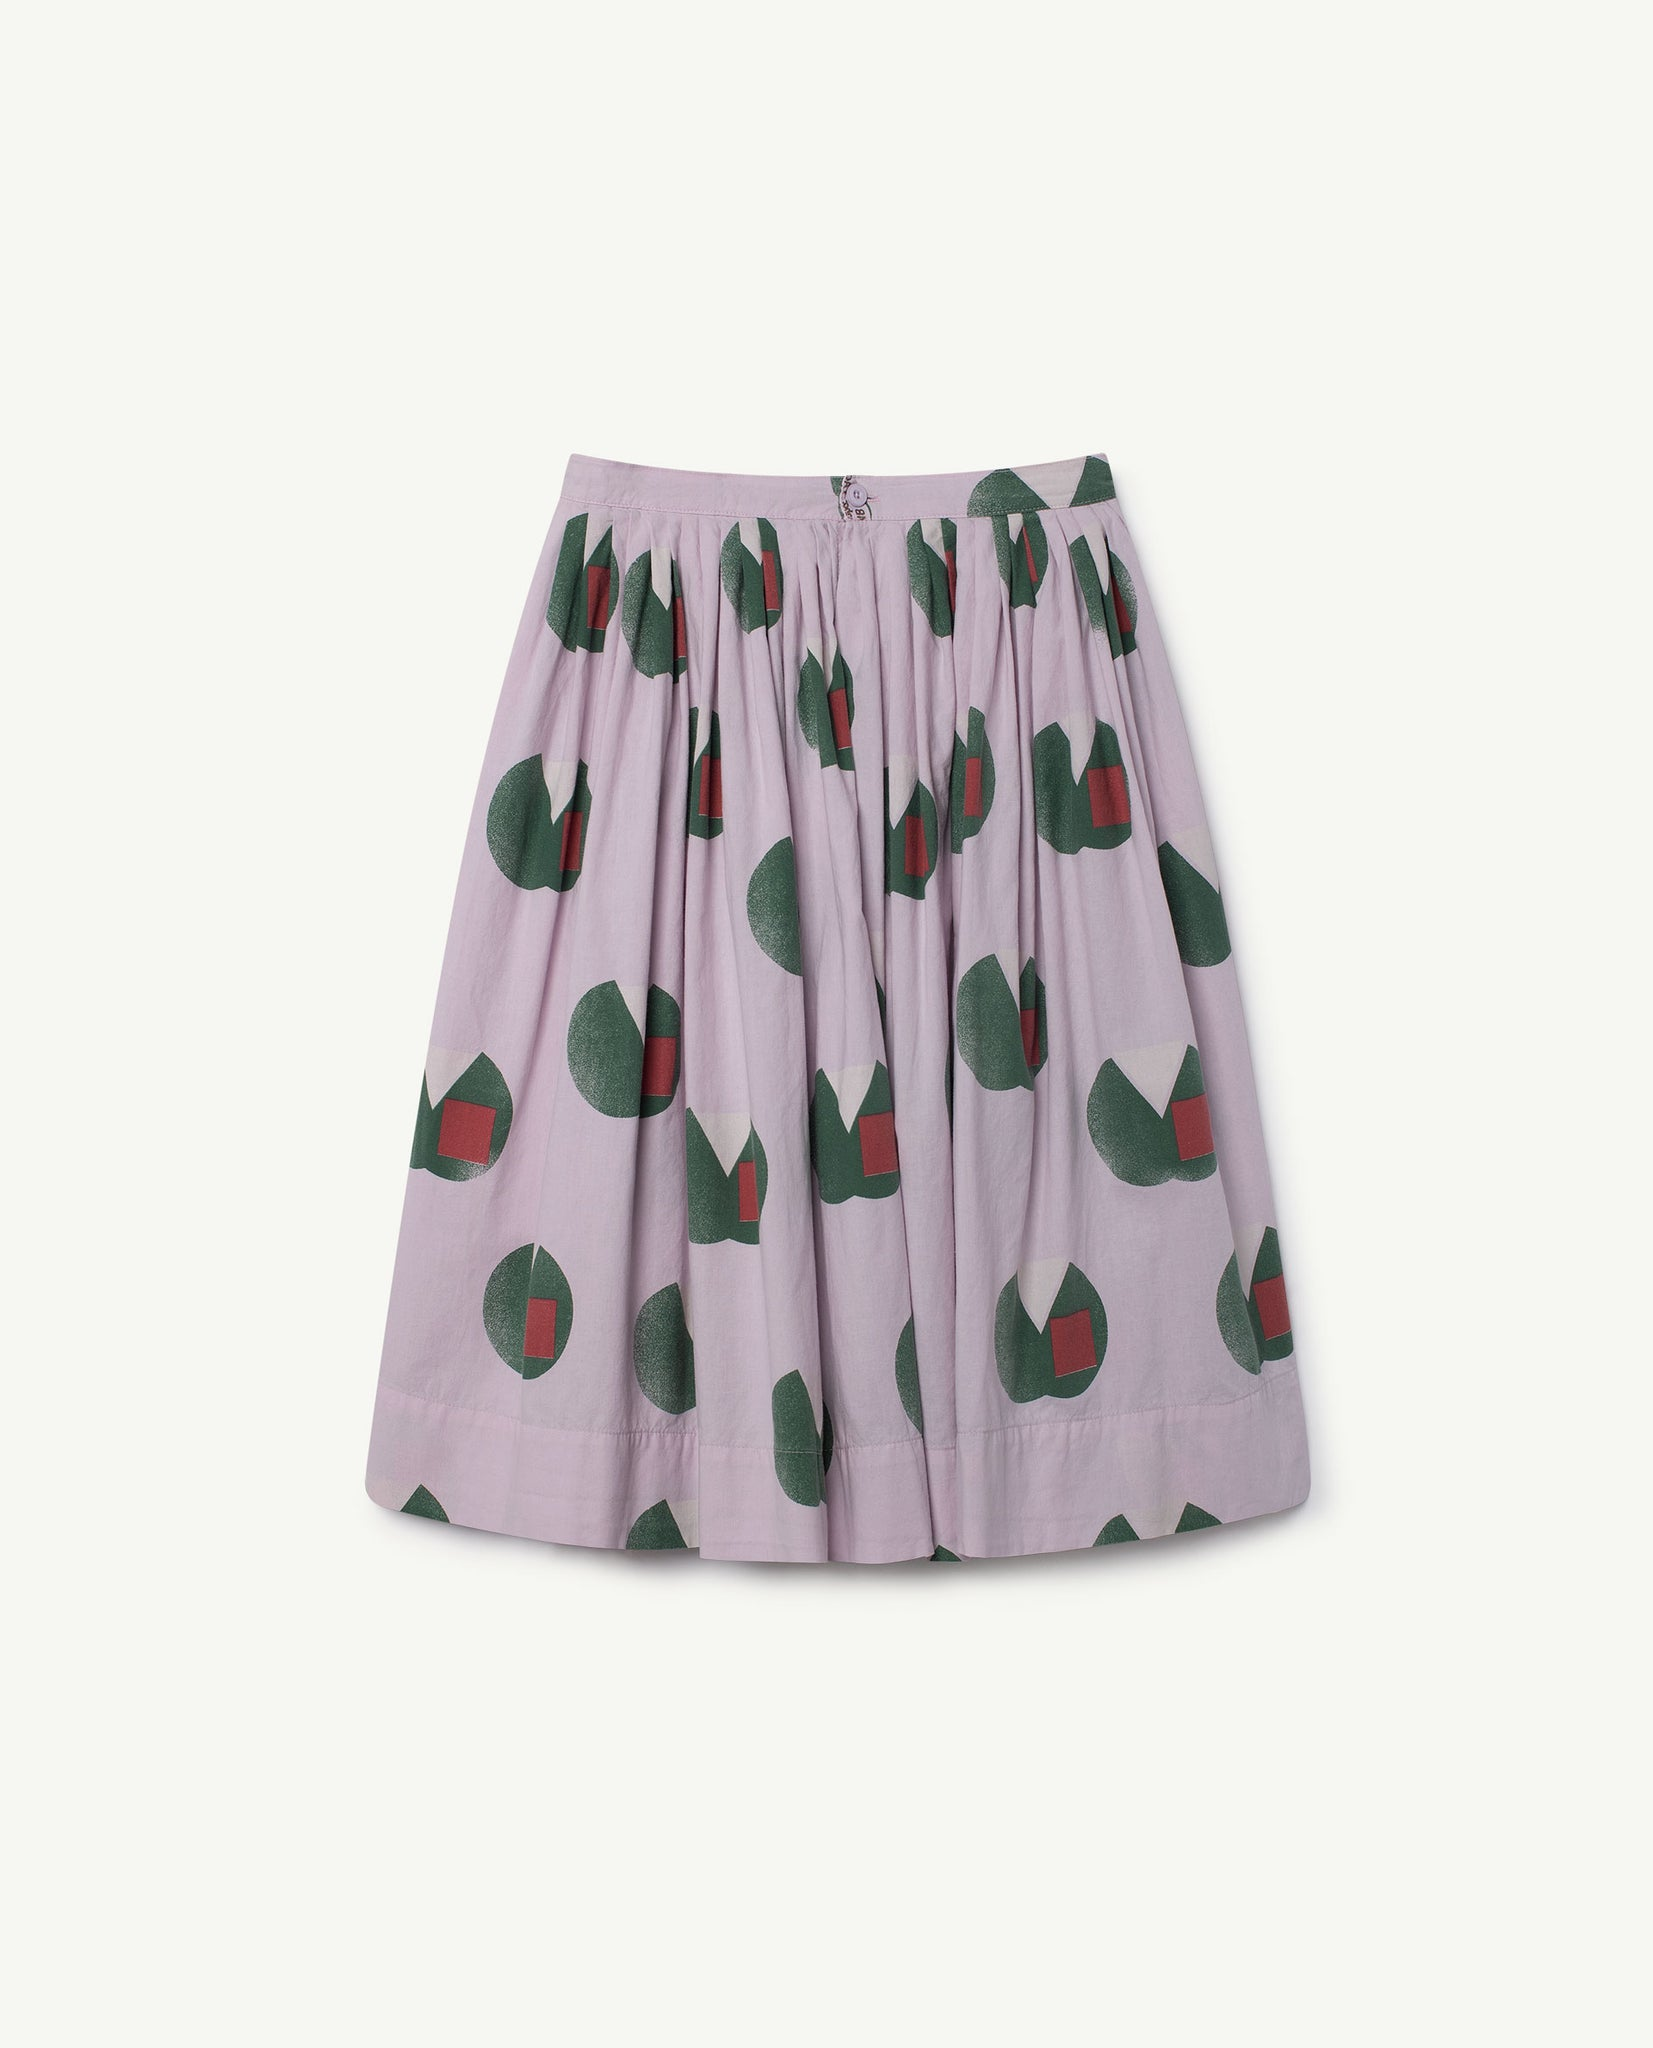 Jellyfish kids skirt - purple apples